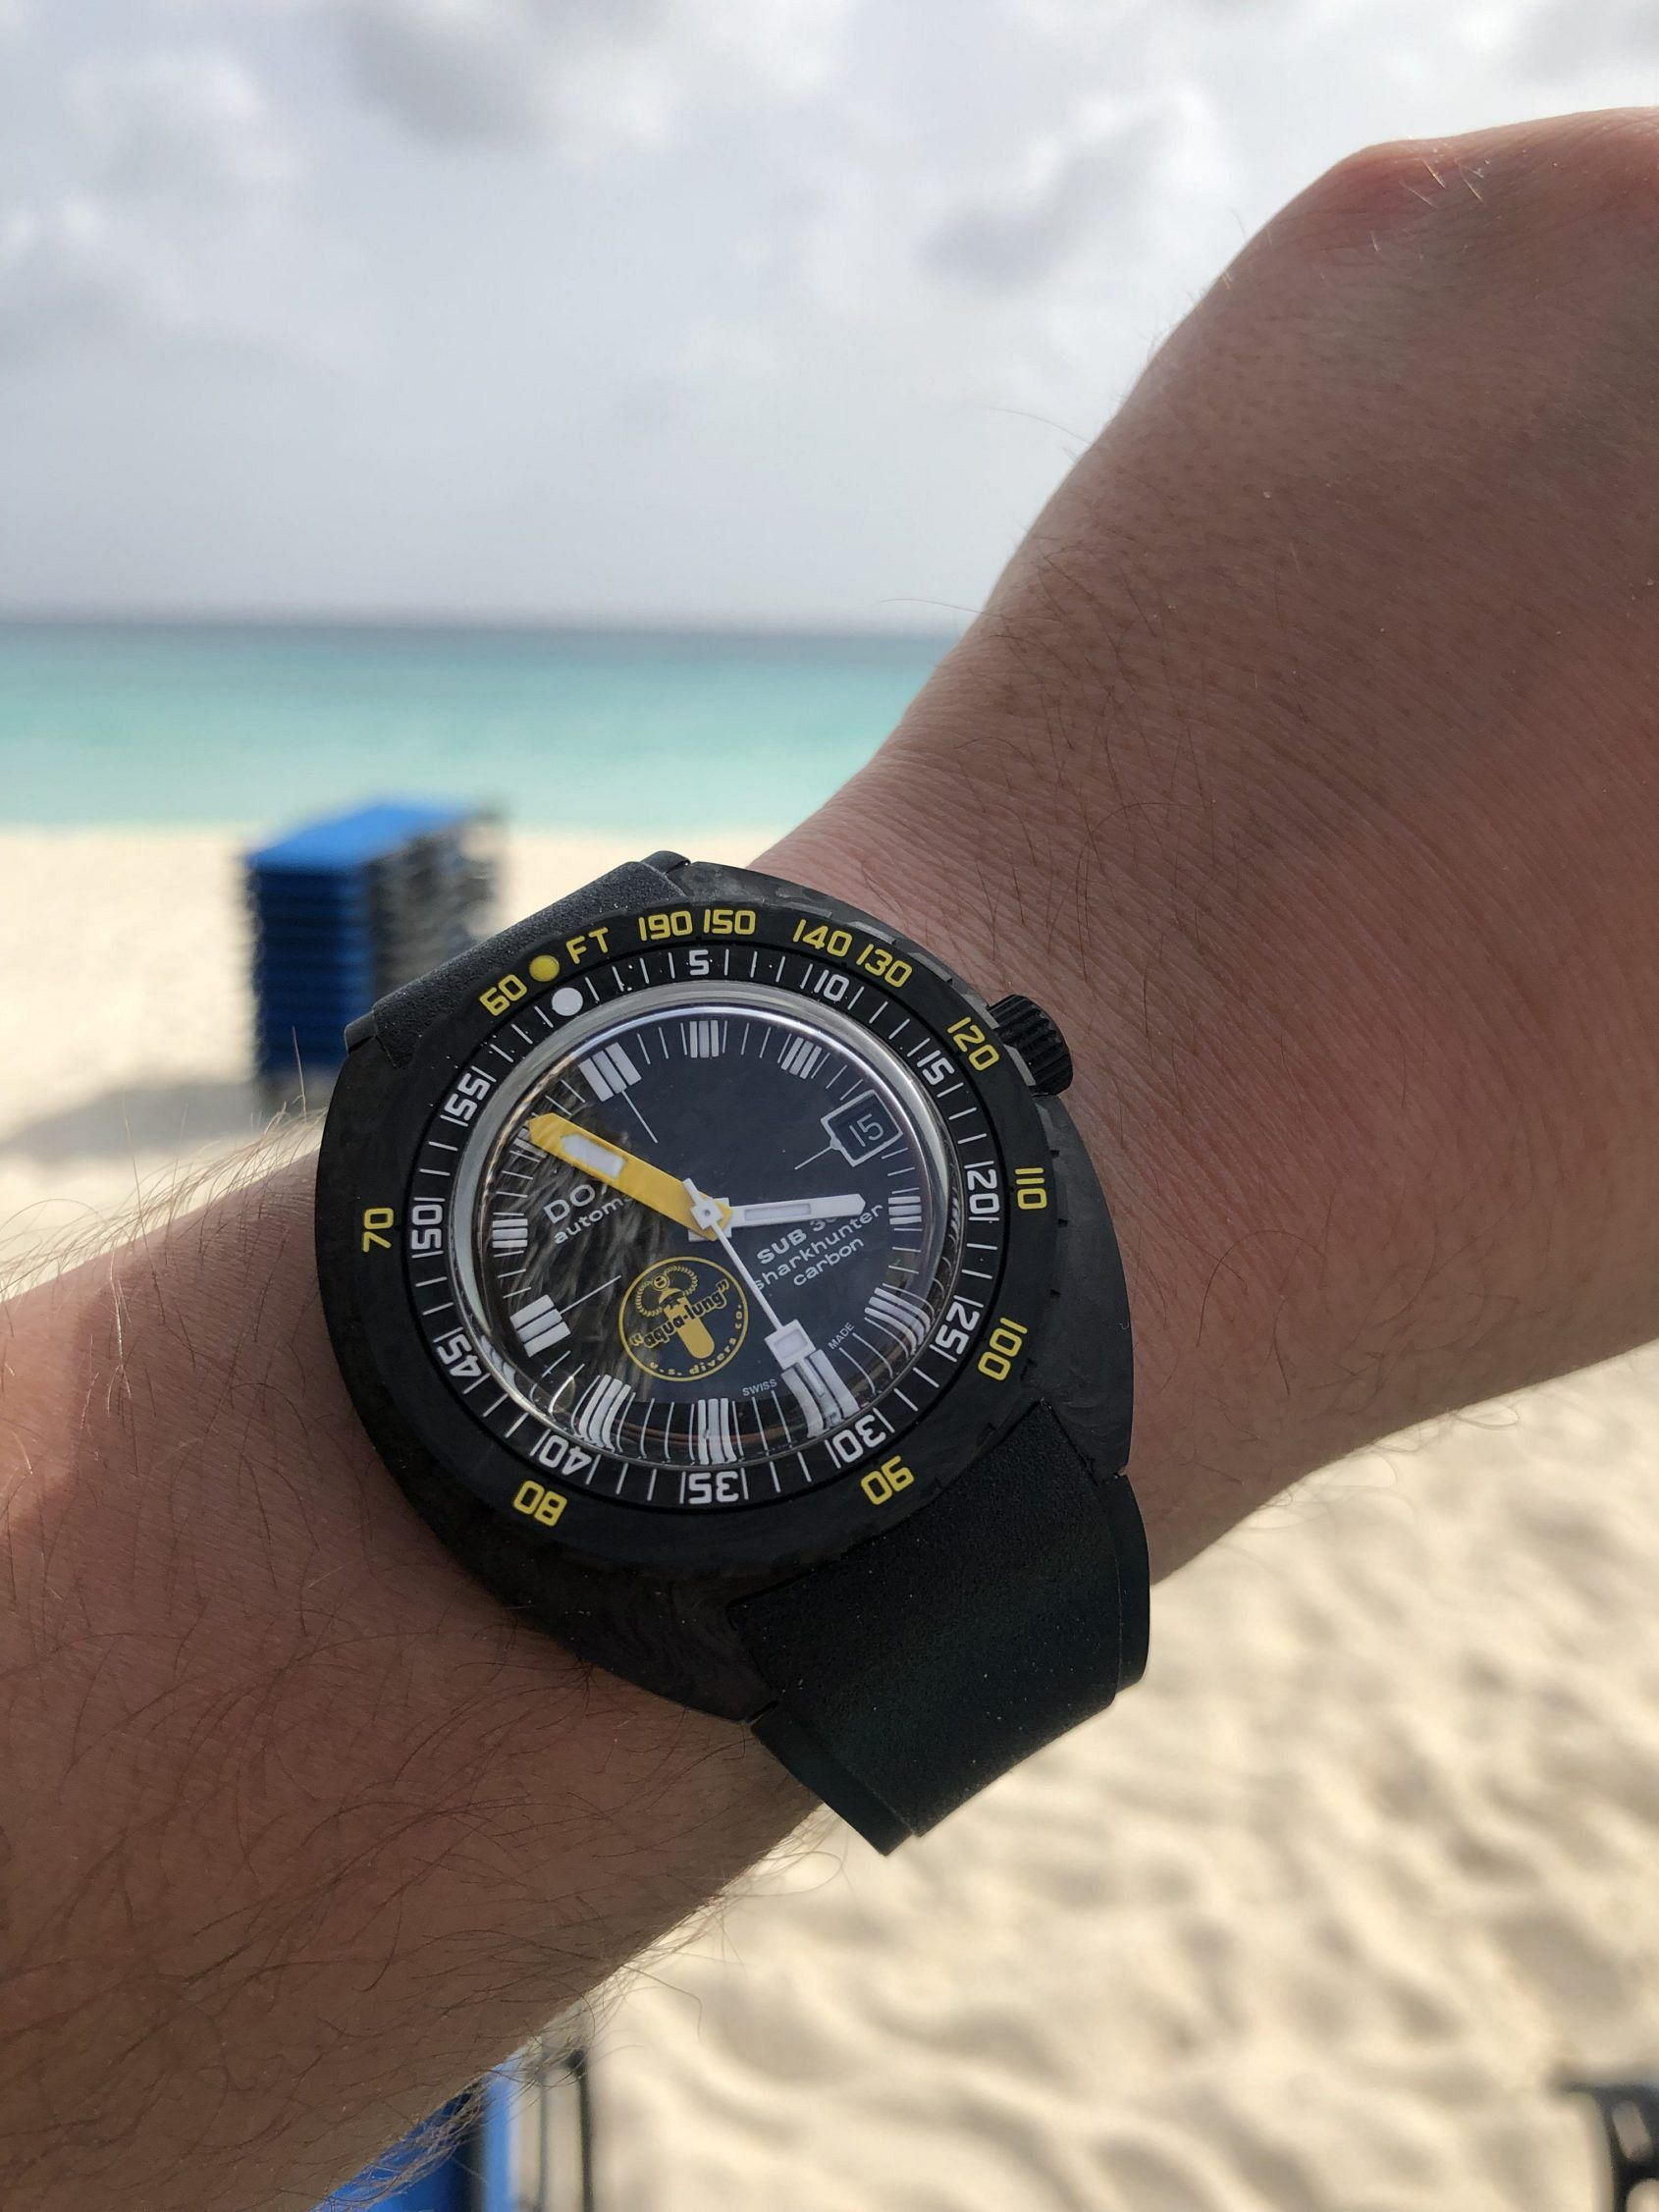 Why the DOXA SUB 300 was the perfect one watch for me to take on vacation